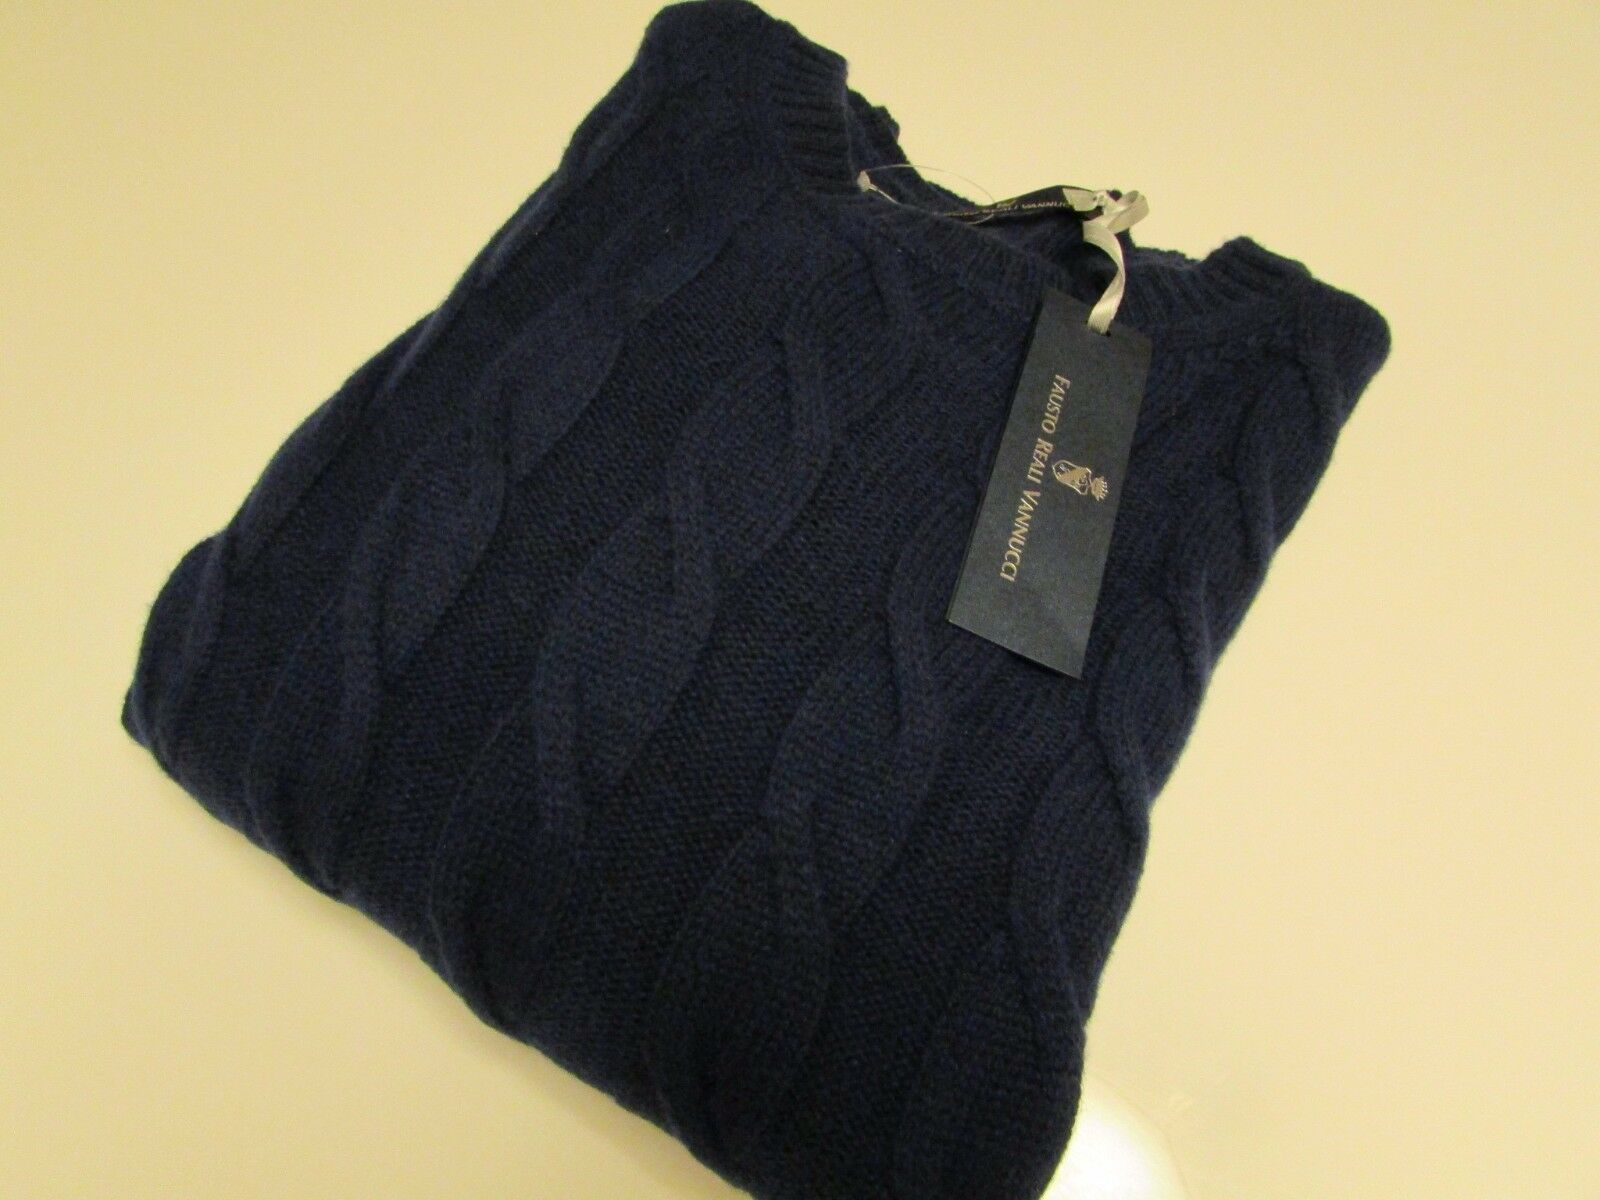 NWT Fausto Reali Vannucci Cable Knit Cashmere Blend Sweater   Size Medium